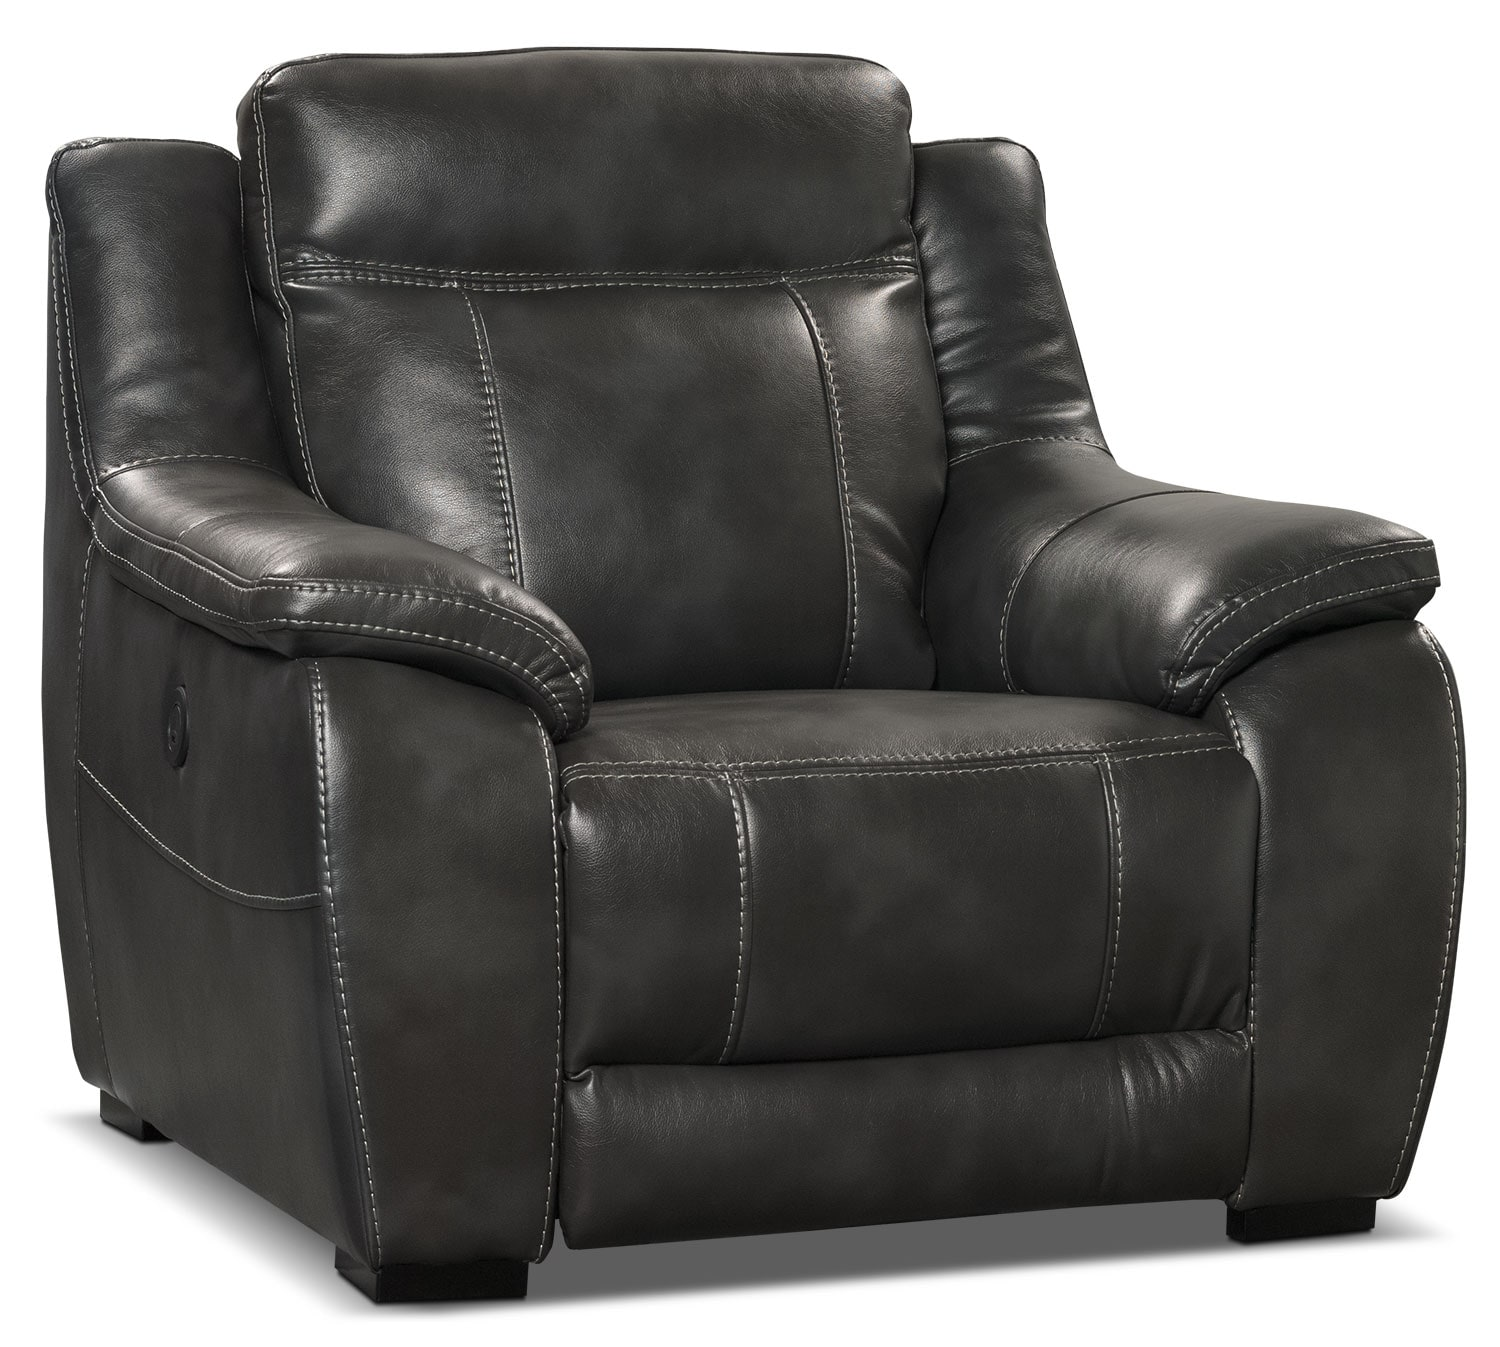 Novo Leather-Look Fabric Power Reclining Chair – Grey